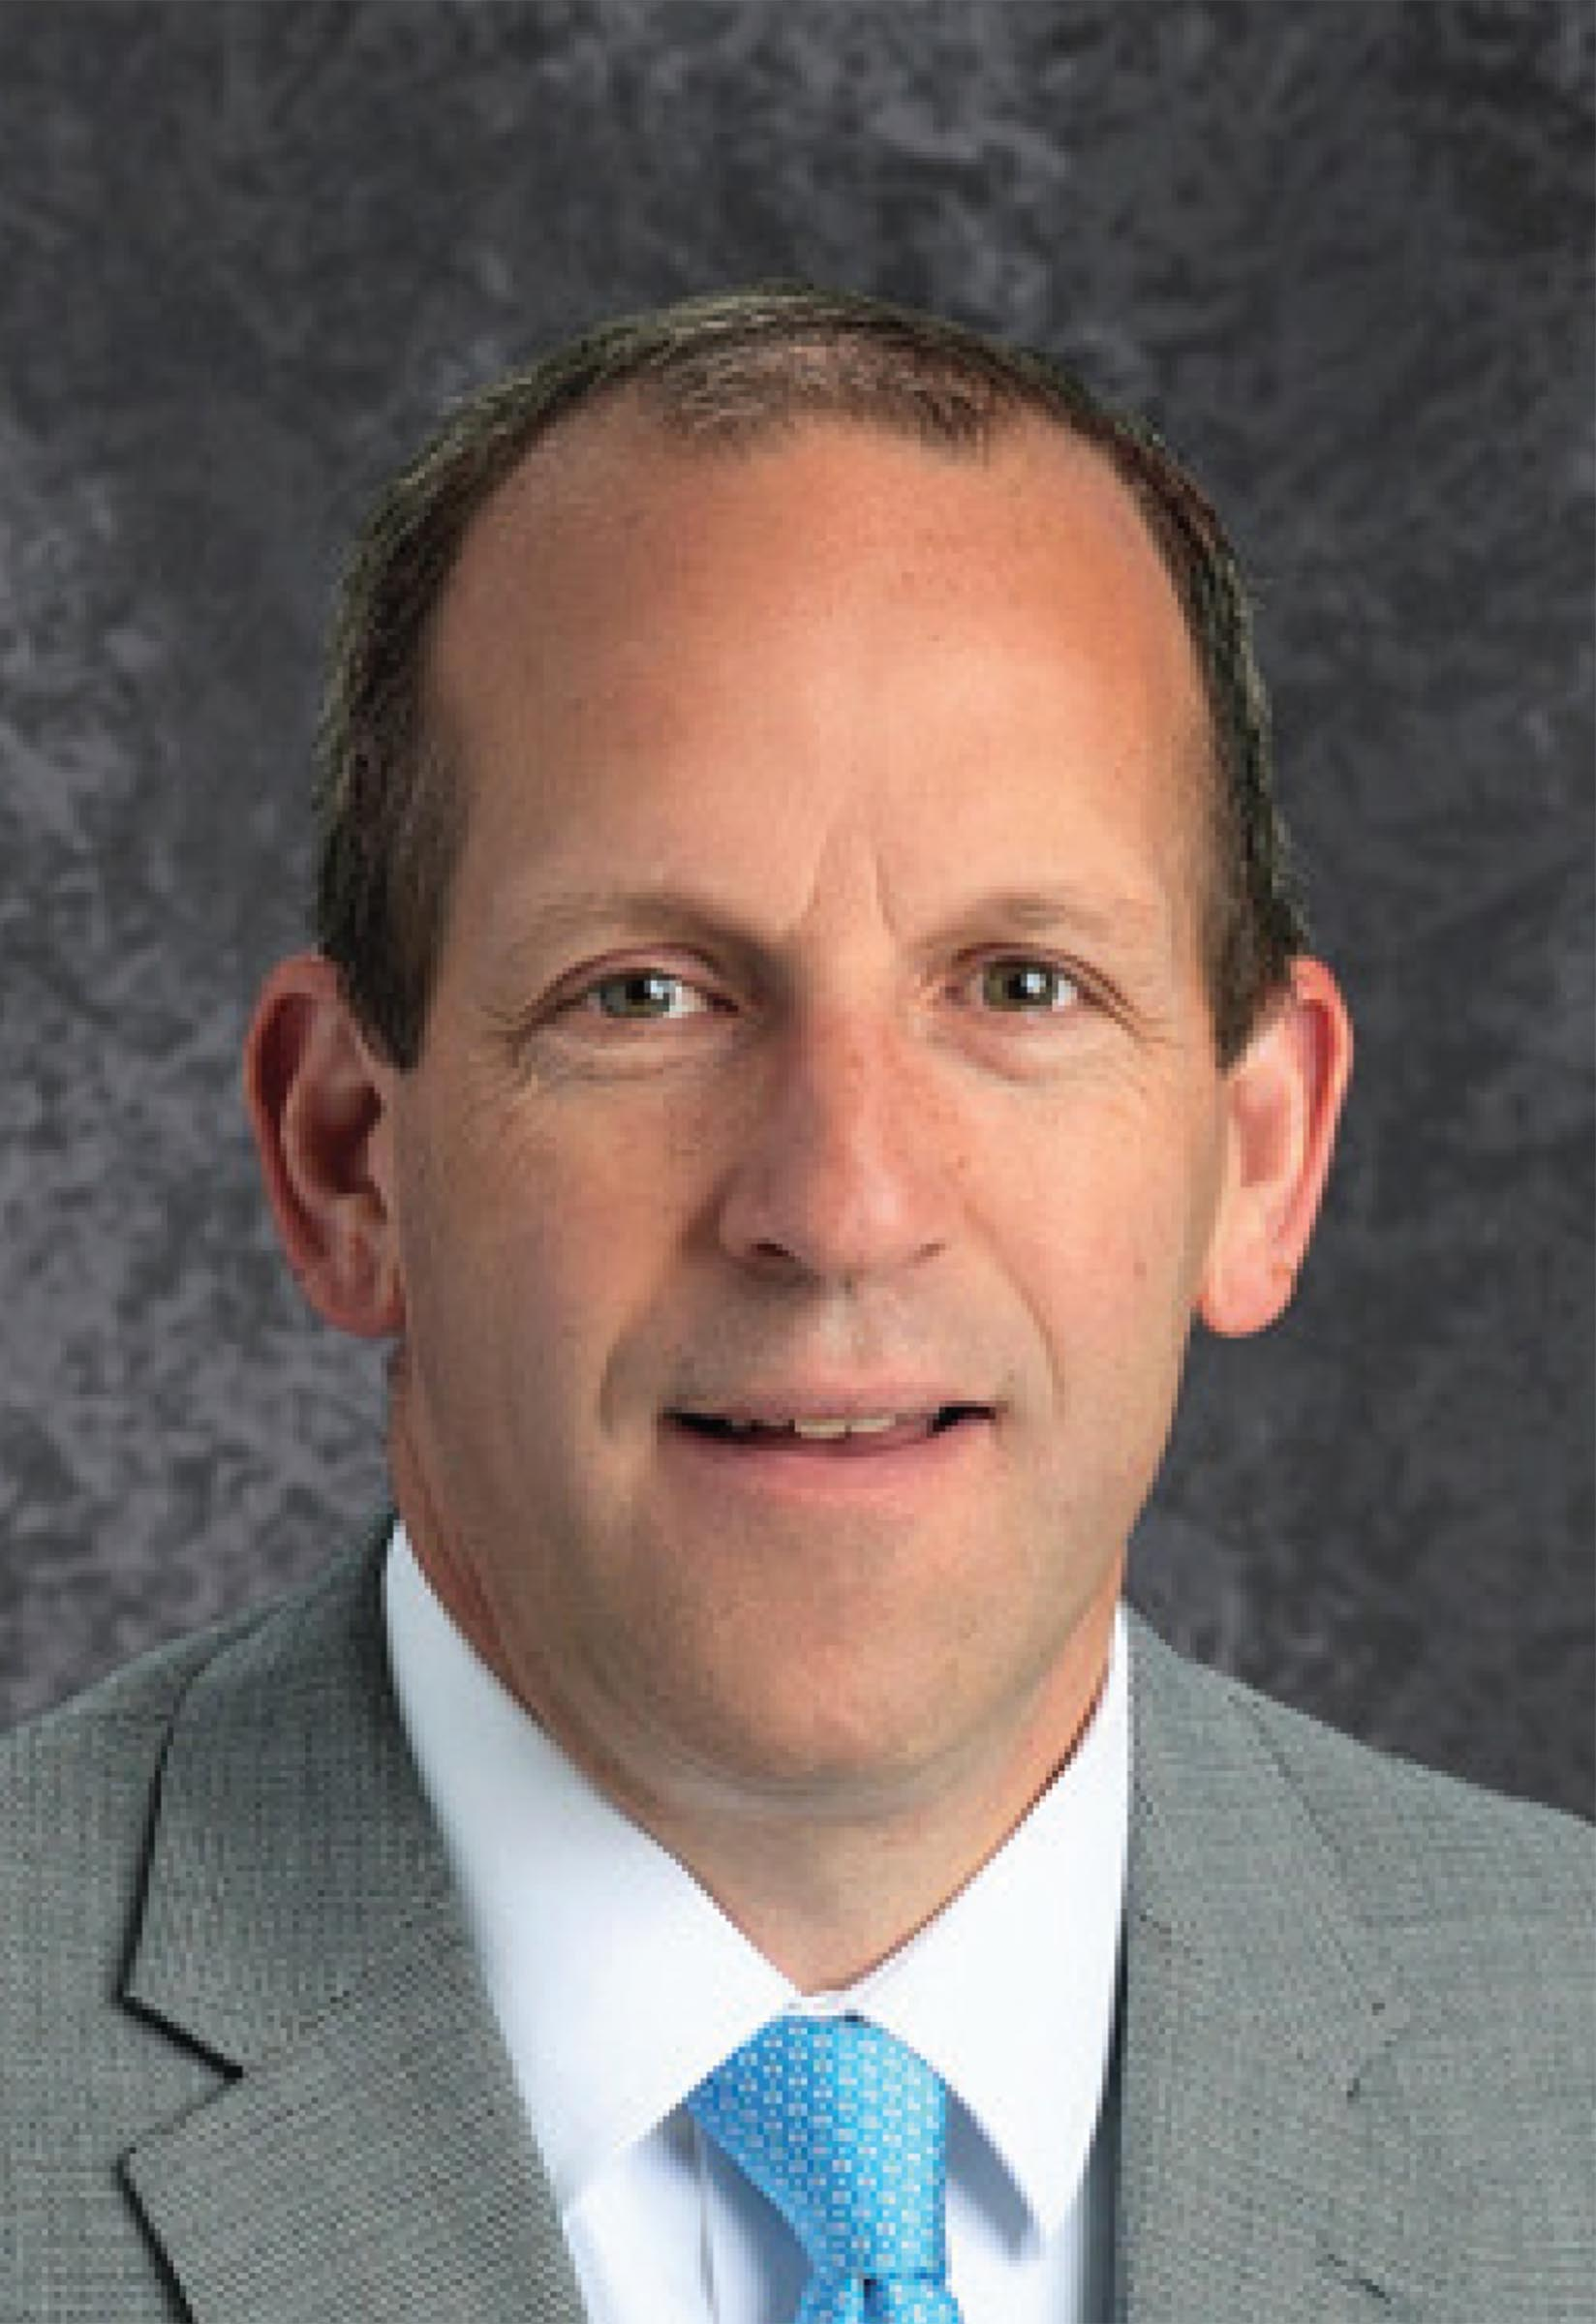 Shane Farnsworth was selected Tuesday, Oct. 27, 2020, to be the new superintendent of the Alpine School District, effective July 1, 2021.